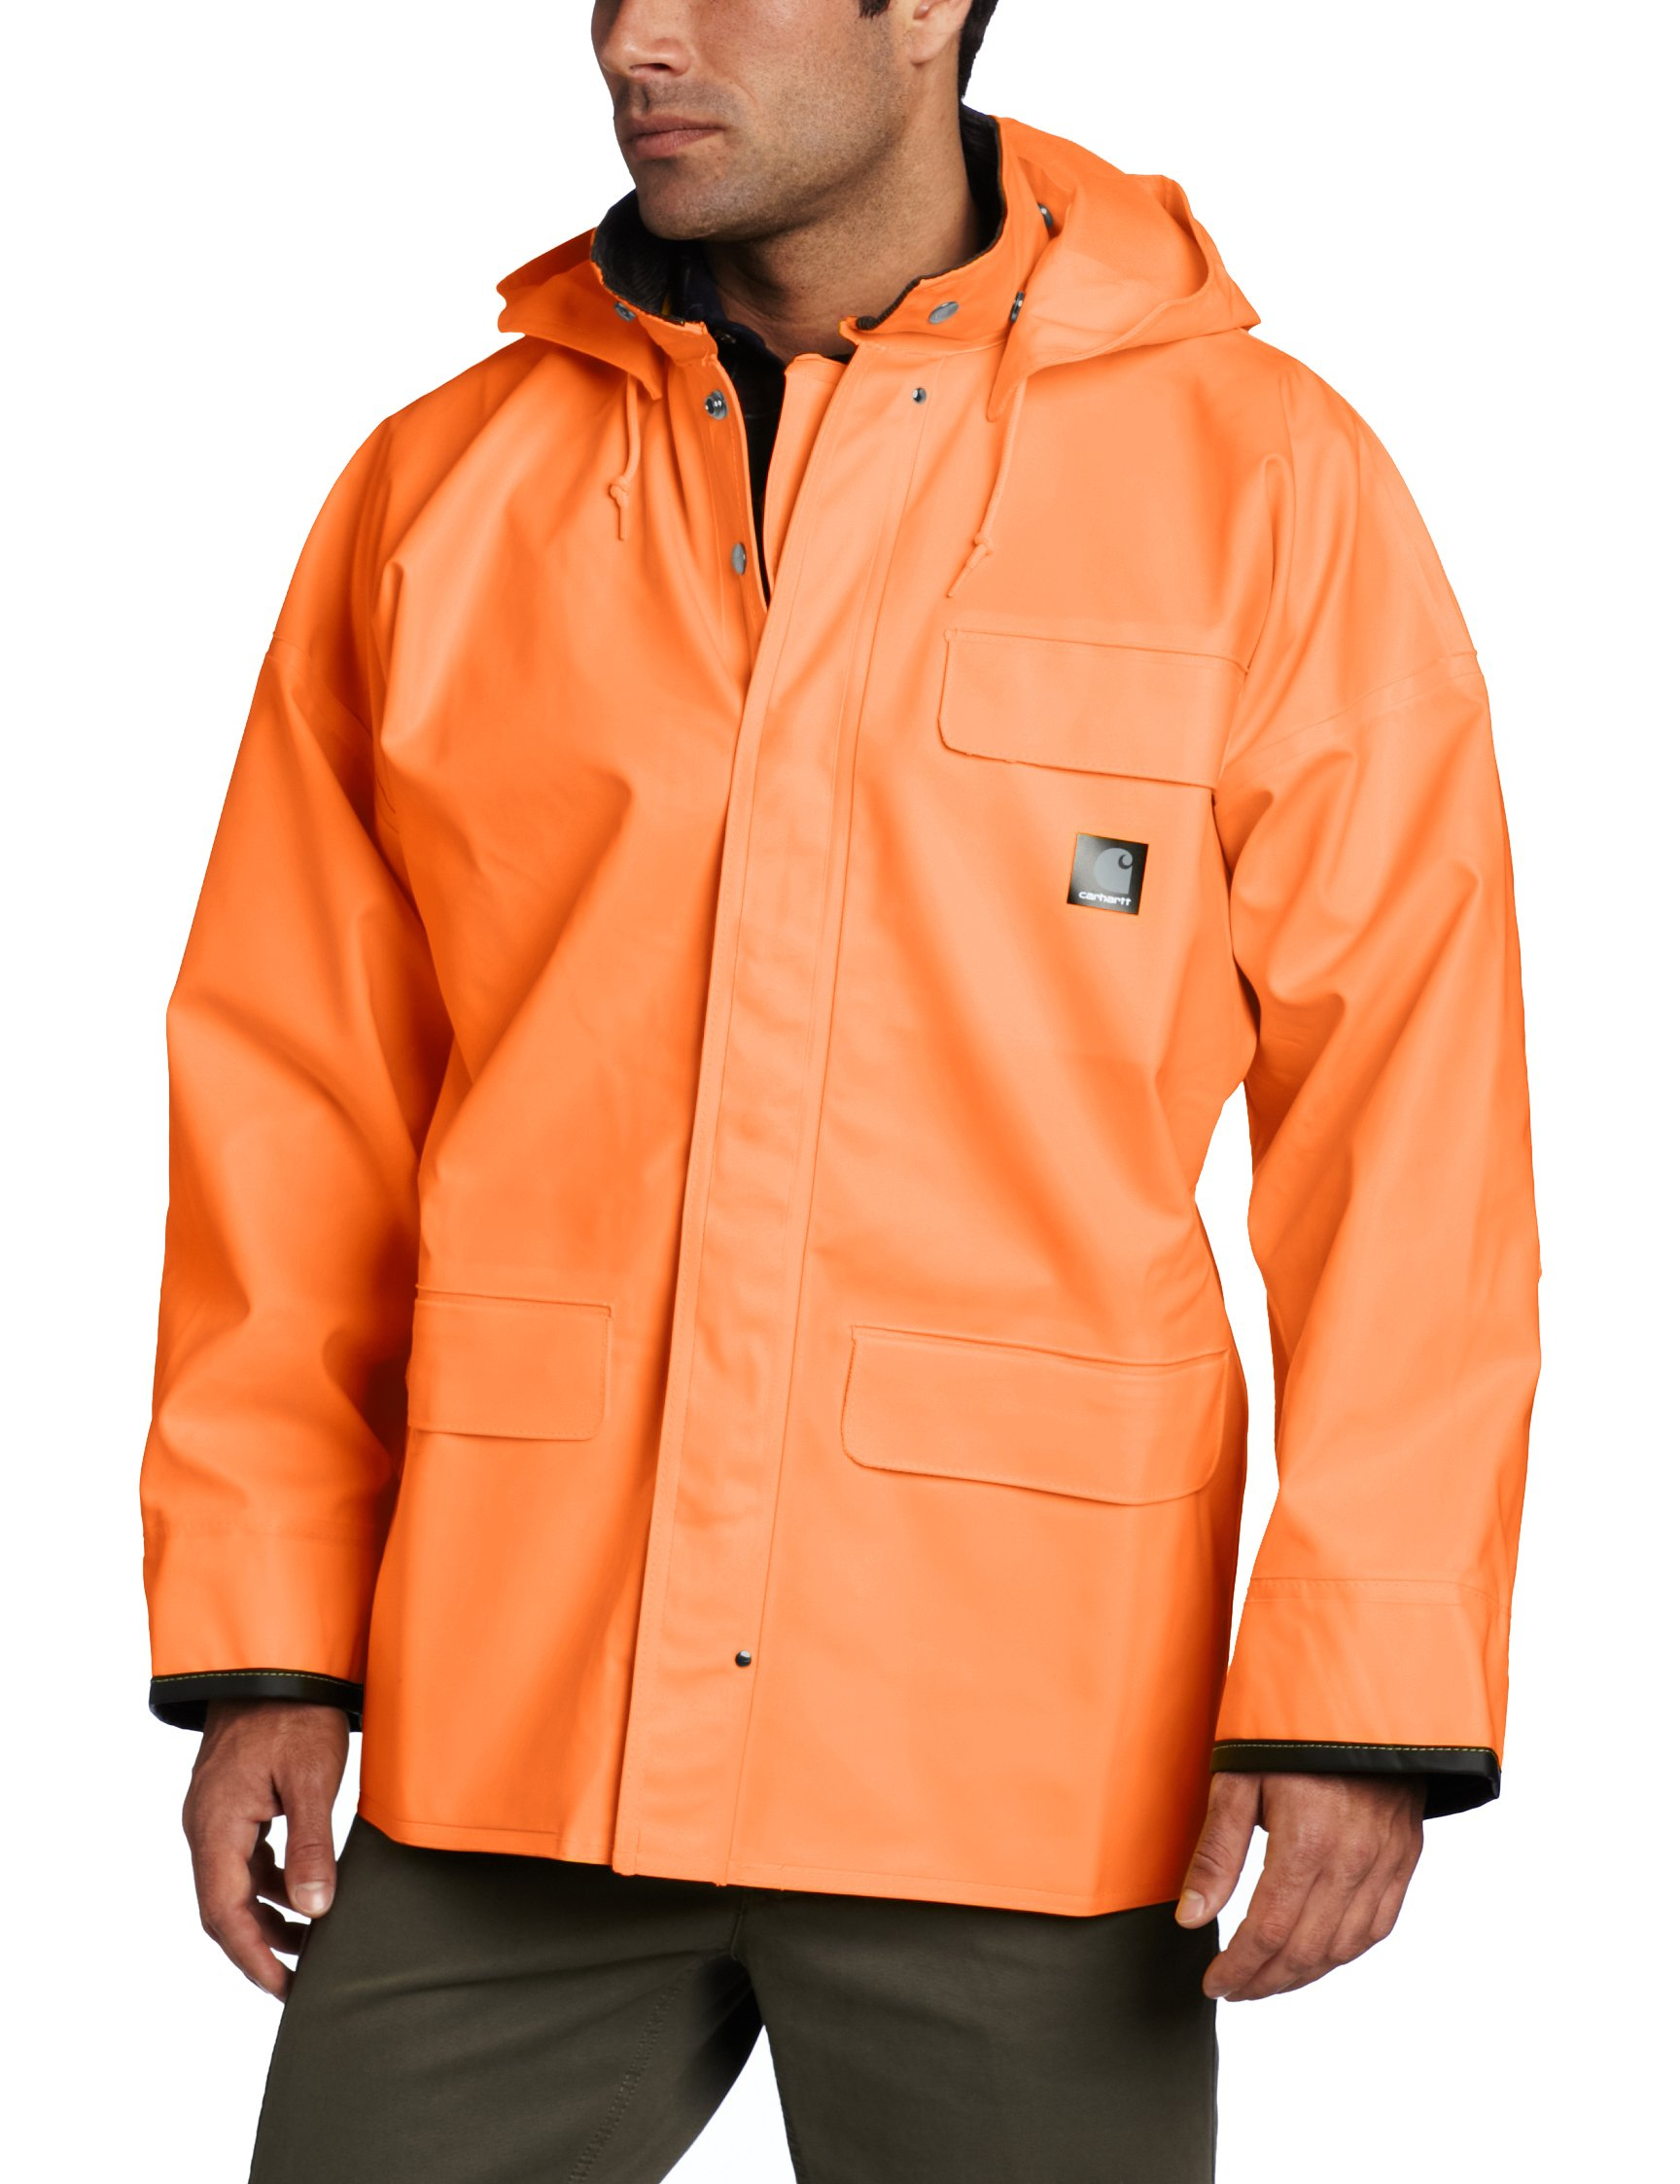 Carhartt Men's Surrey Coat,Orange,X-Large Regular